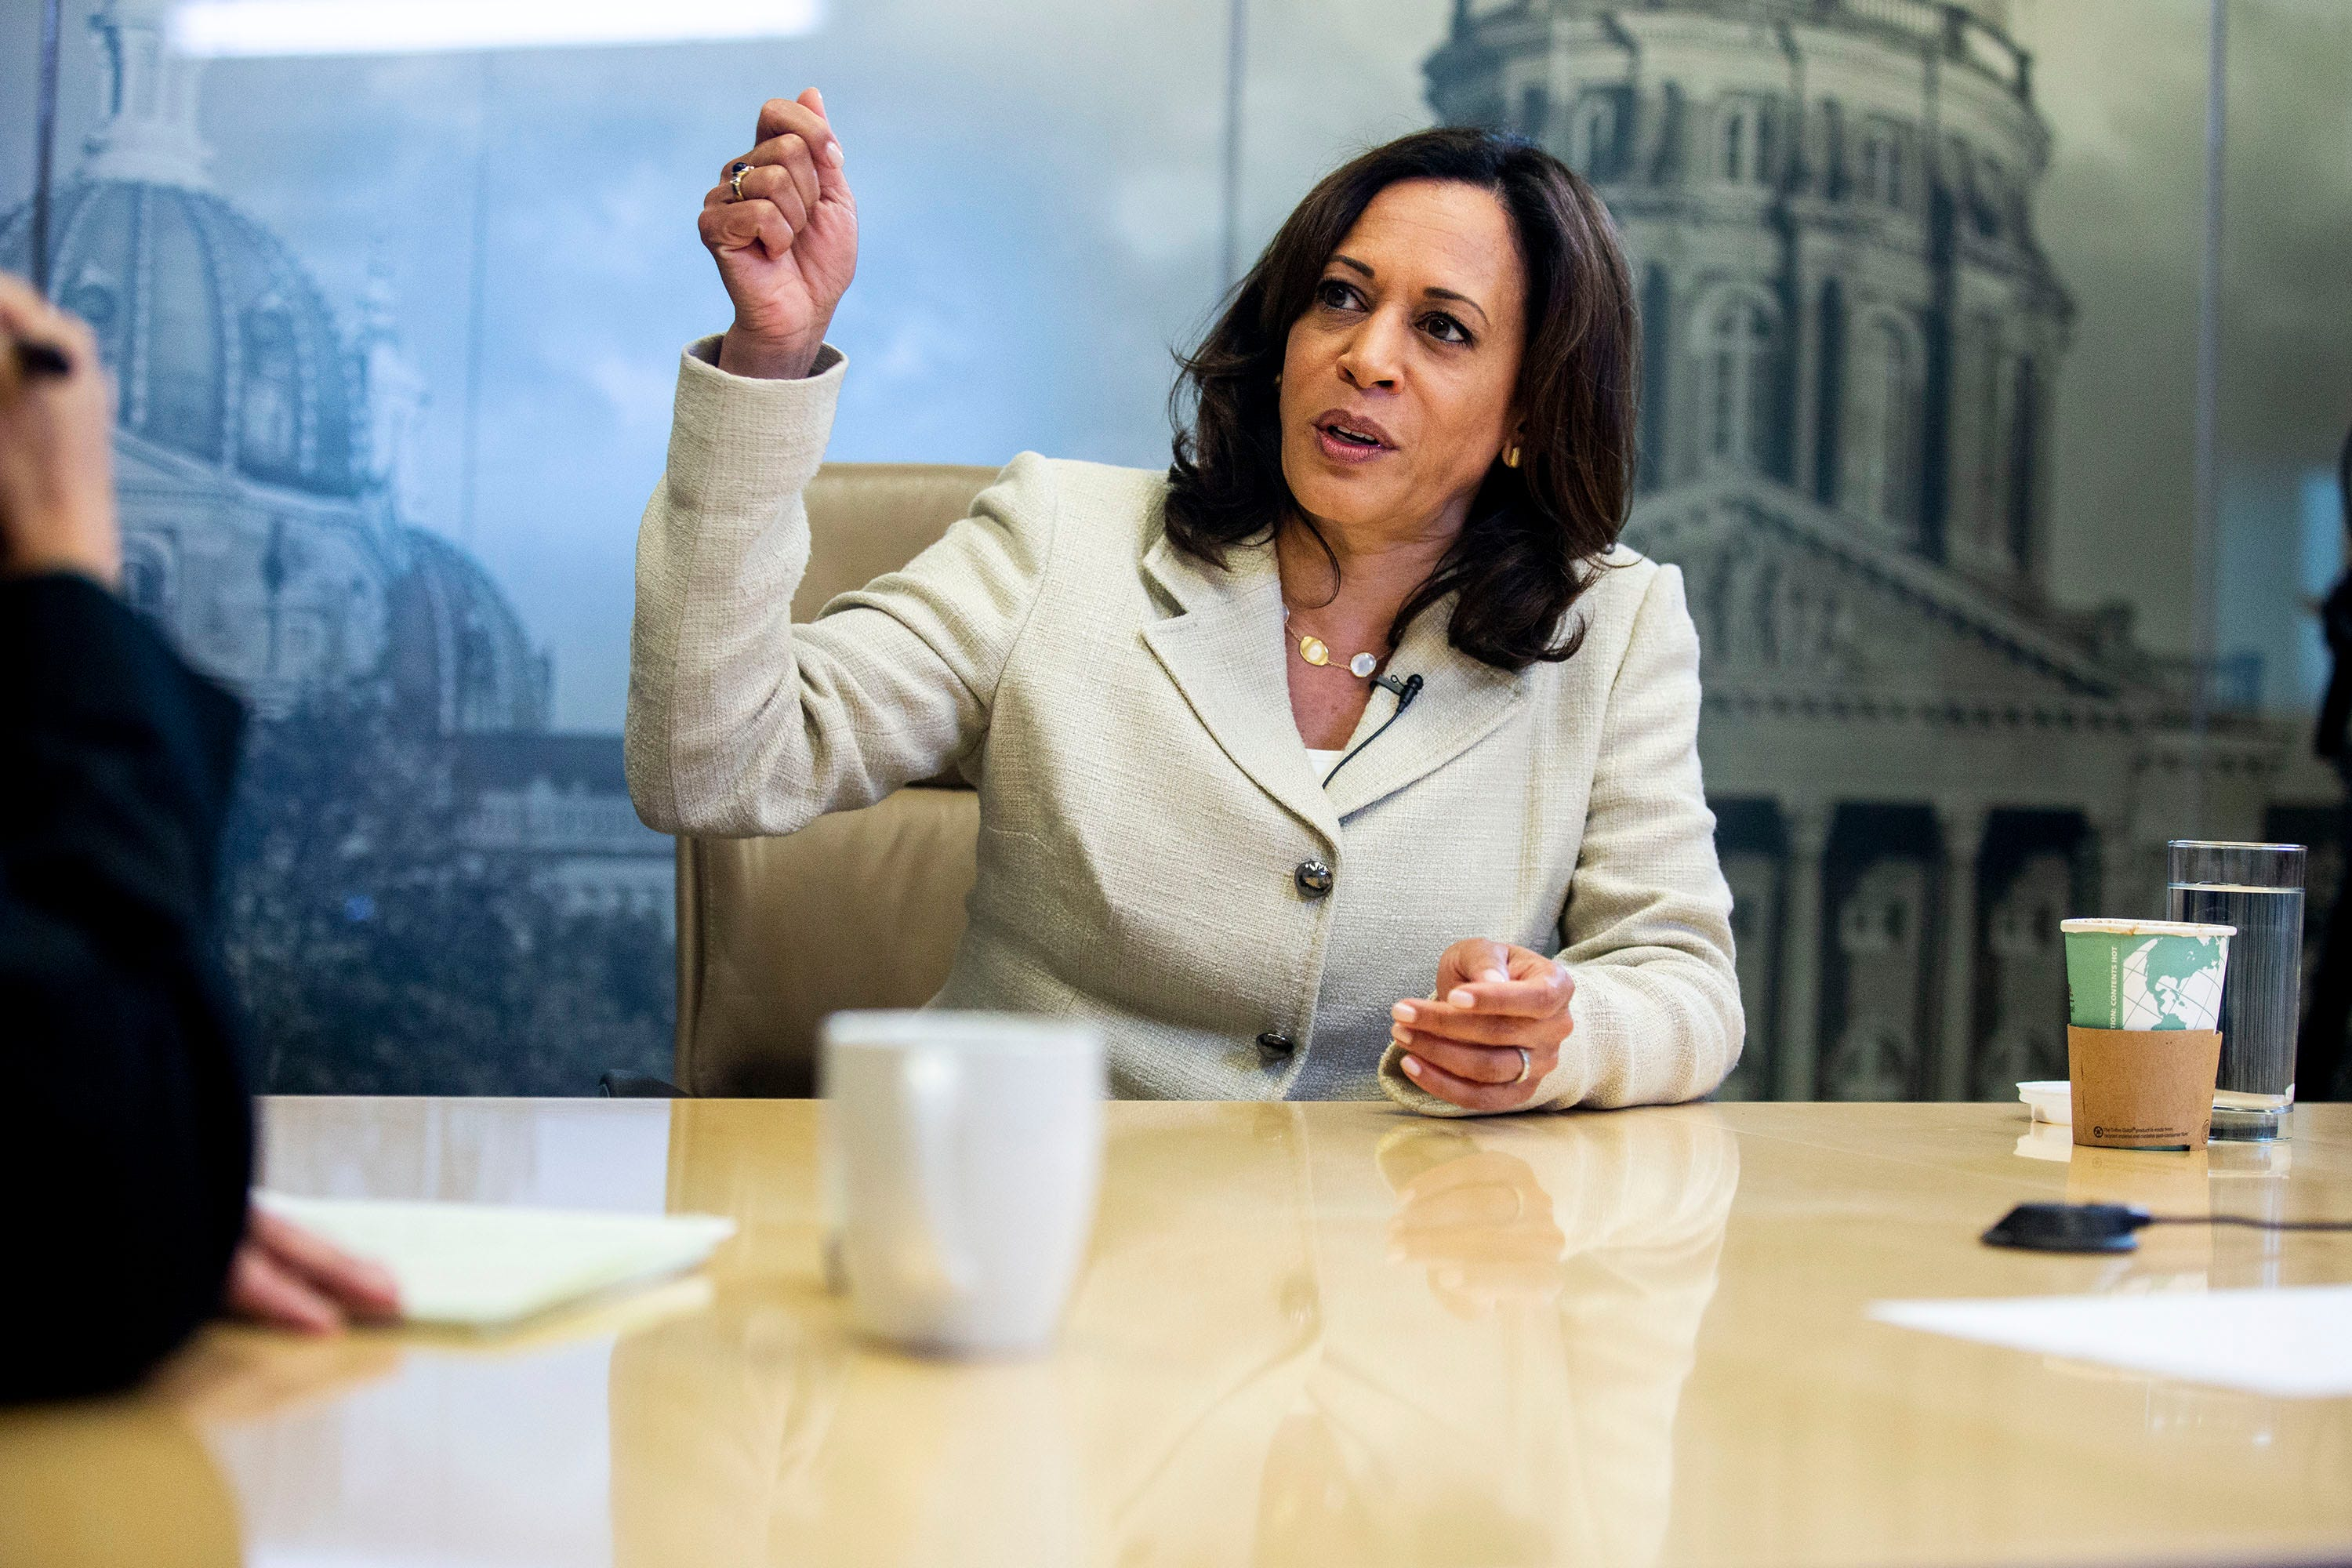 Iowa Caucus First Impressions: Sen. Kamala Harris makes good case for her presidency